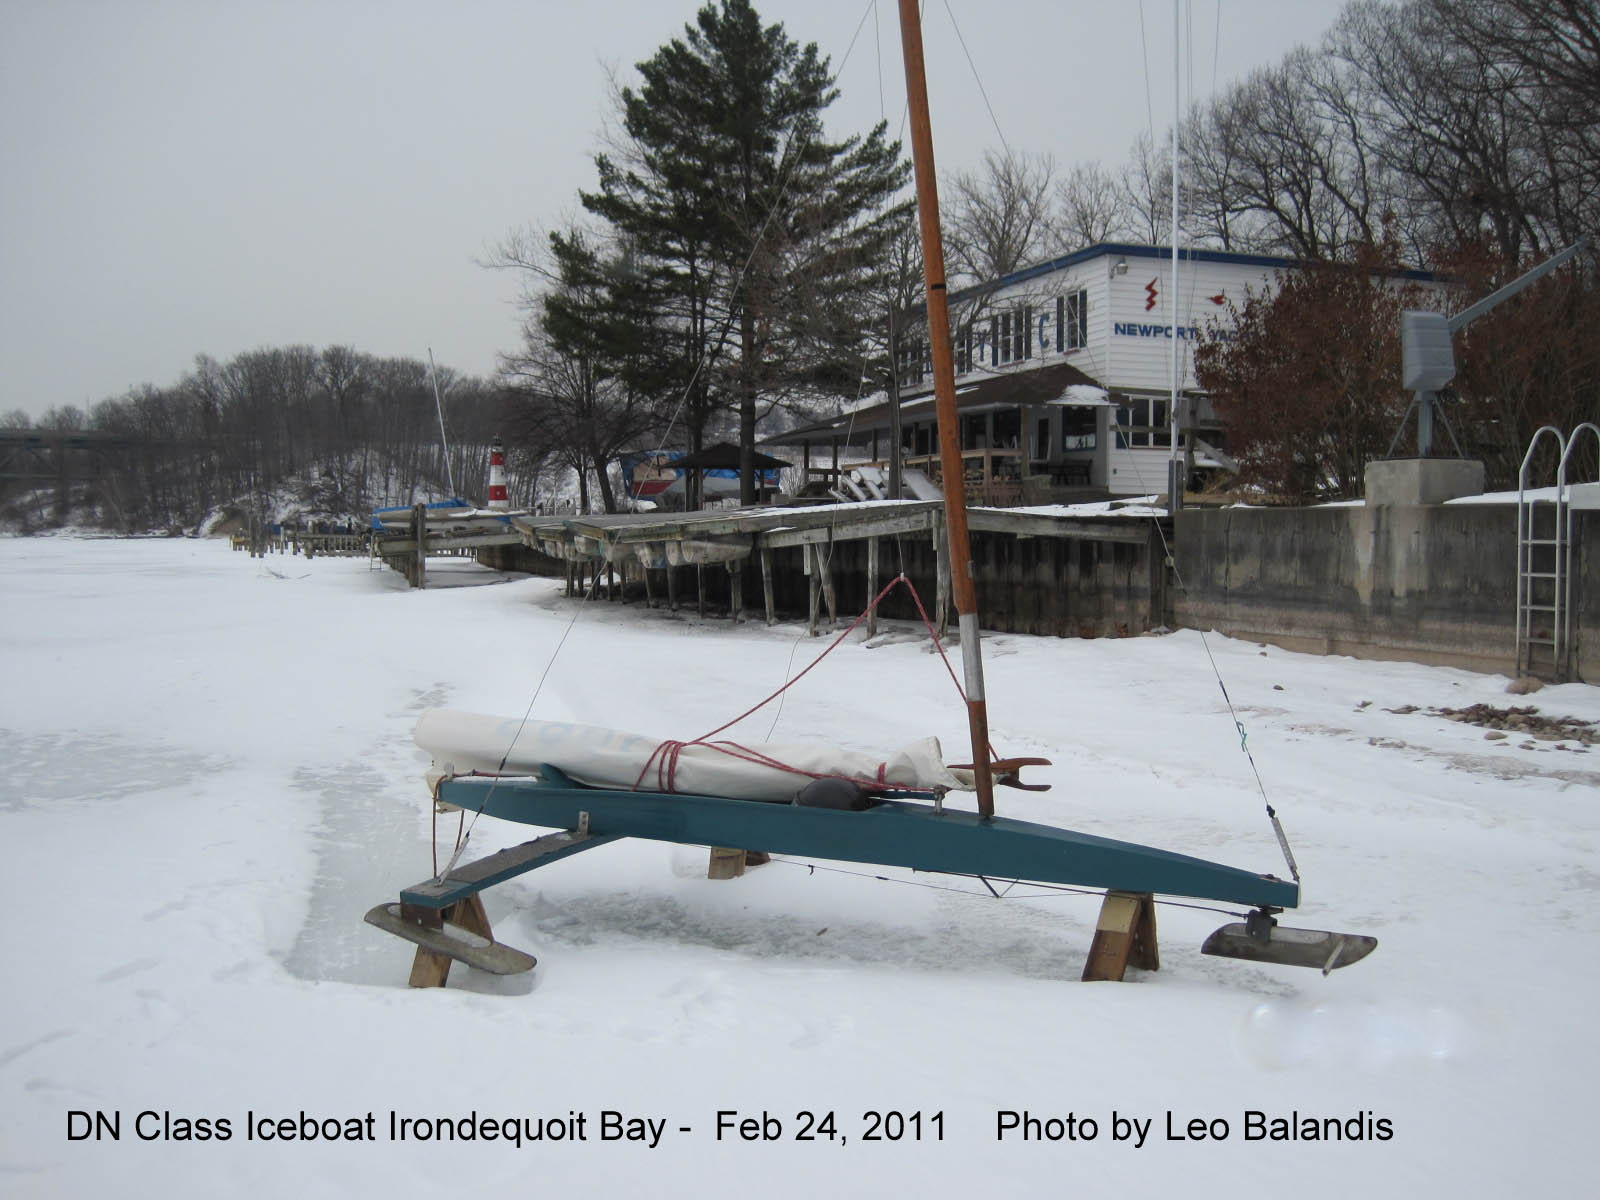 Iceboat DN Class Irondequoit Bay